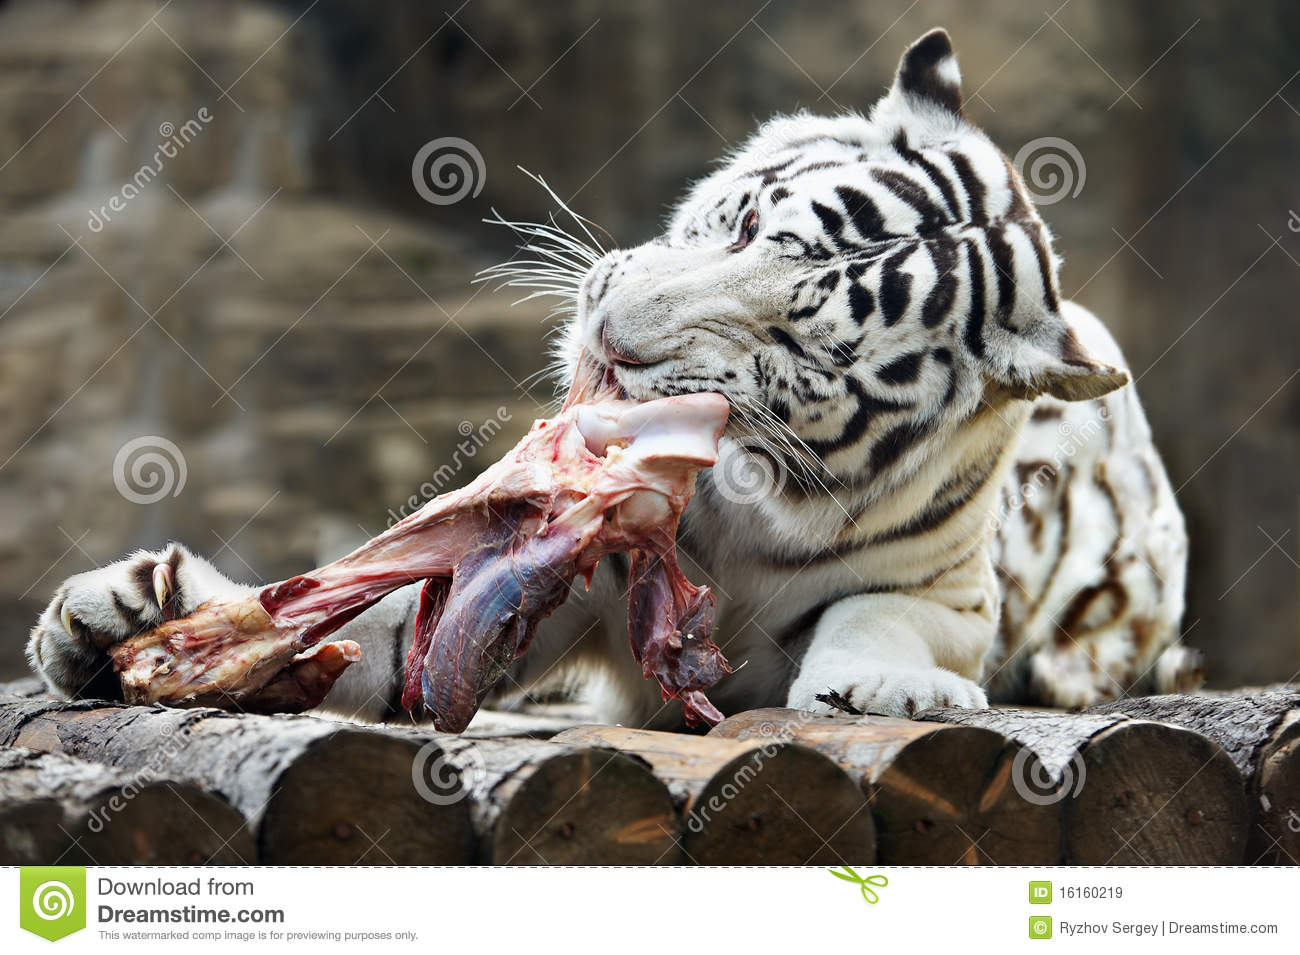 White bengal tiger tore his teeth a meat royalty free stock images image 16160219 - Alimentacion del tigre blanco ...